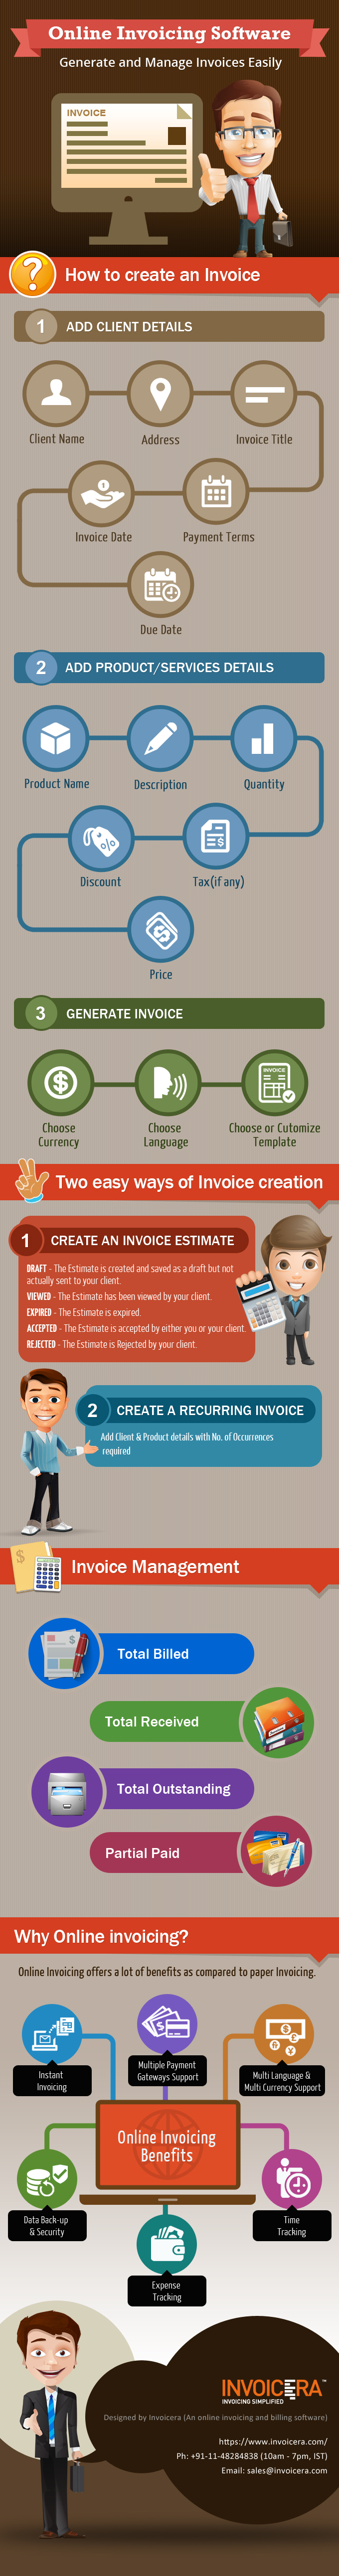 Online Invoicing Software Infographic